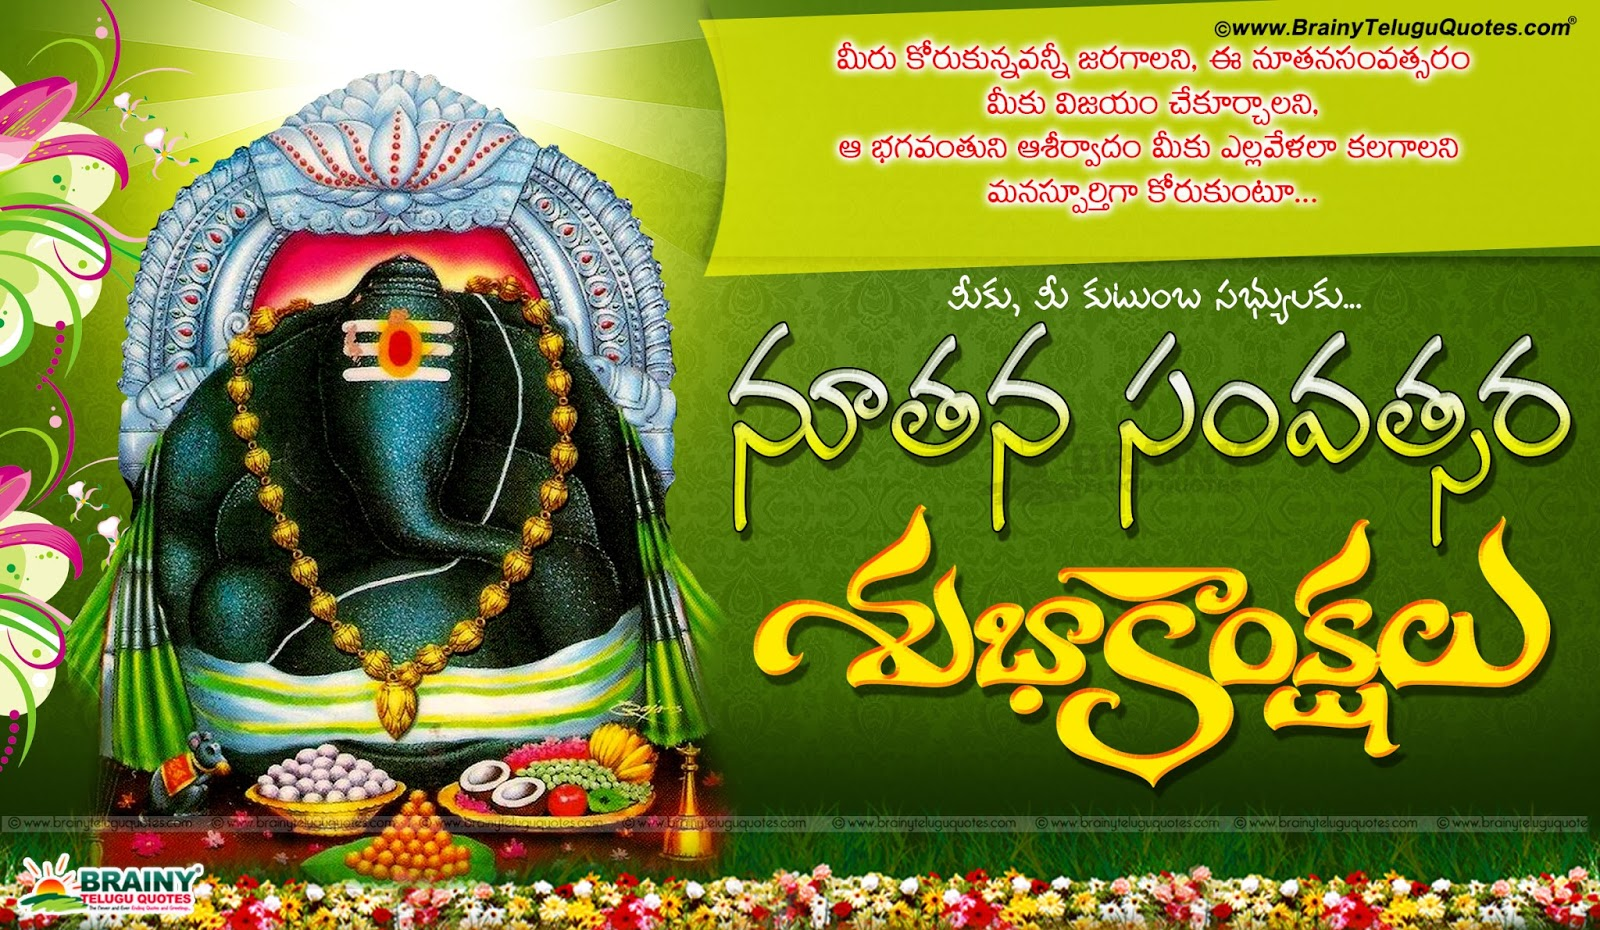 Lord vinayaka blessings on new year new year greetings in telugu telugu new year quotes new year online greetings in telugu free new year quotes kristyandbryce Image collections